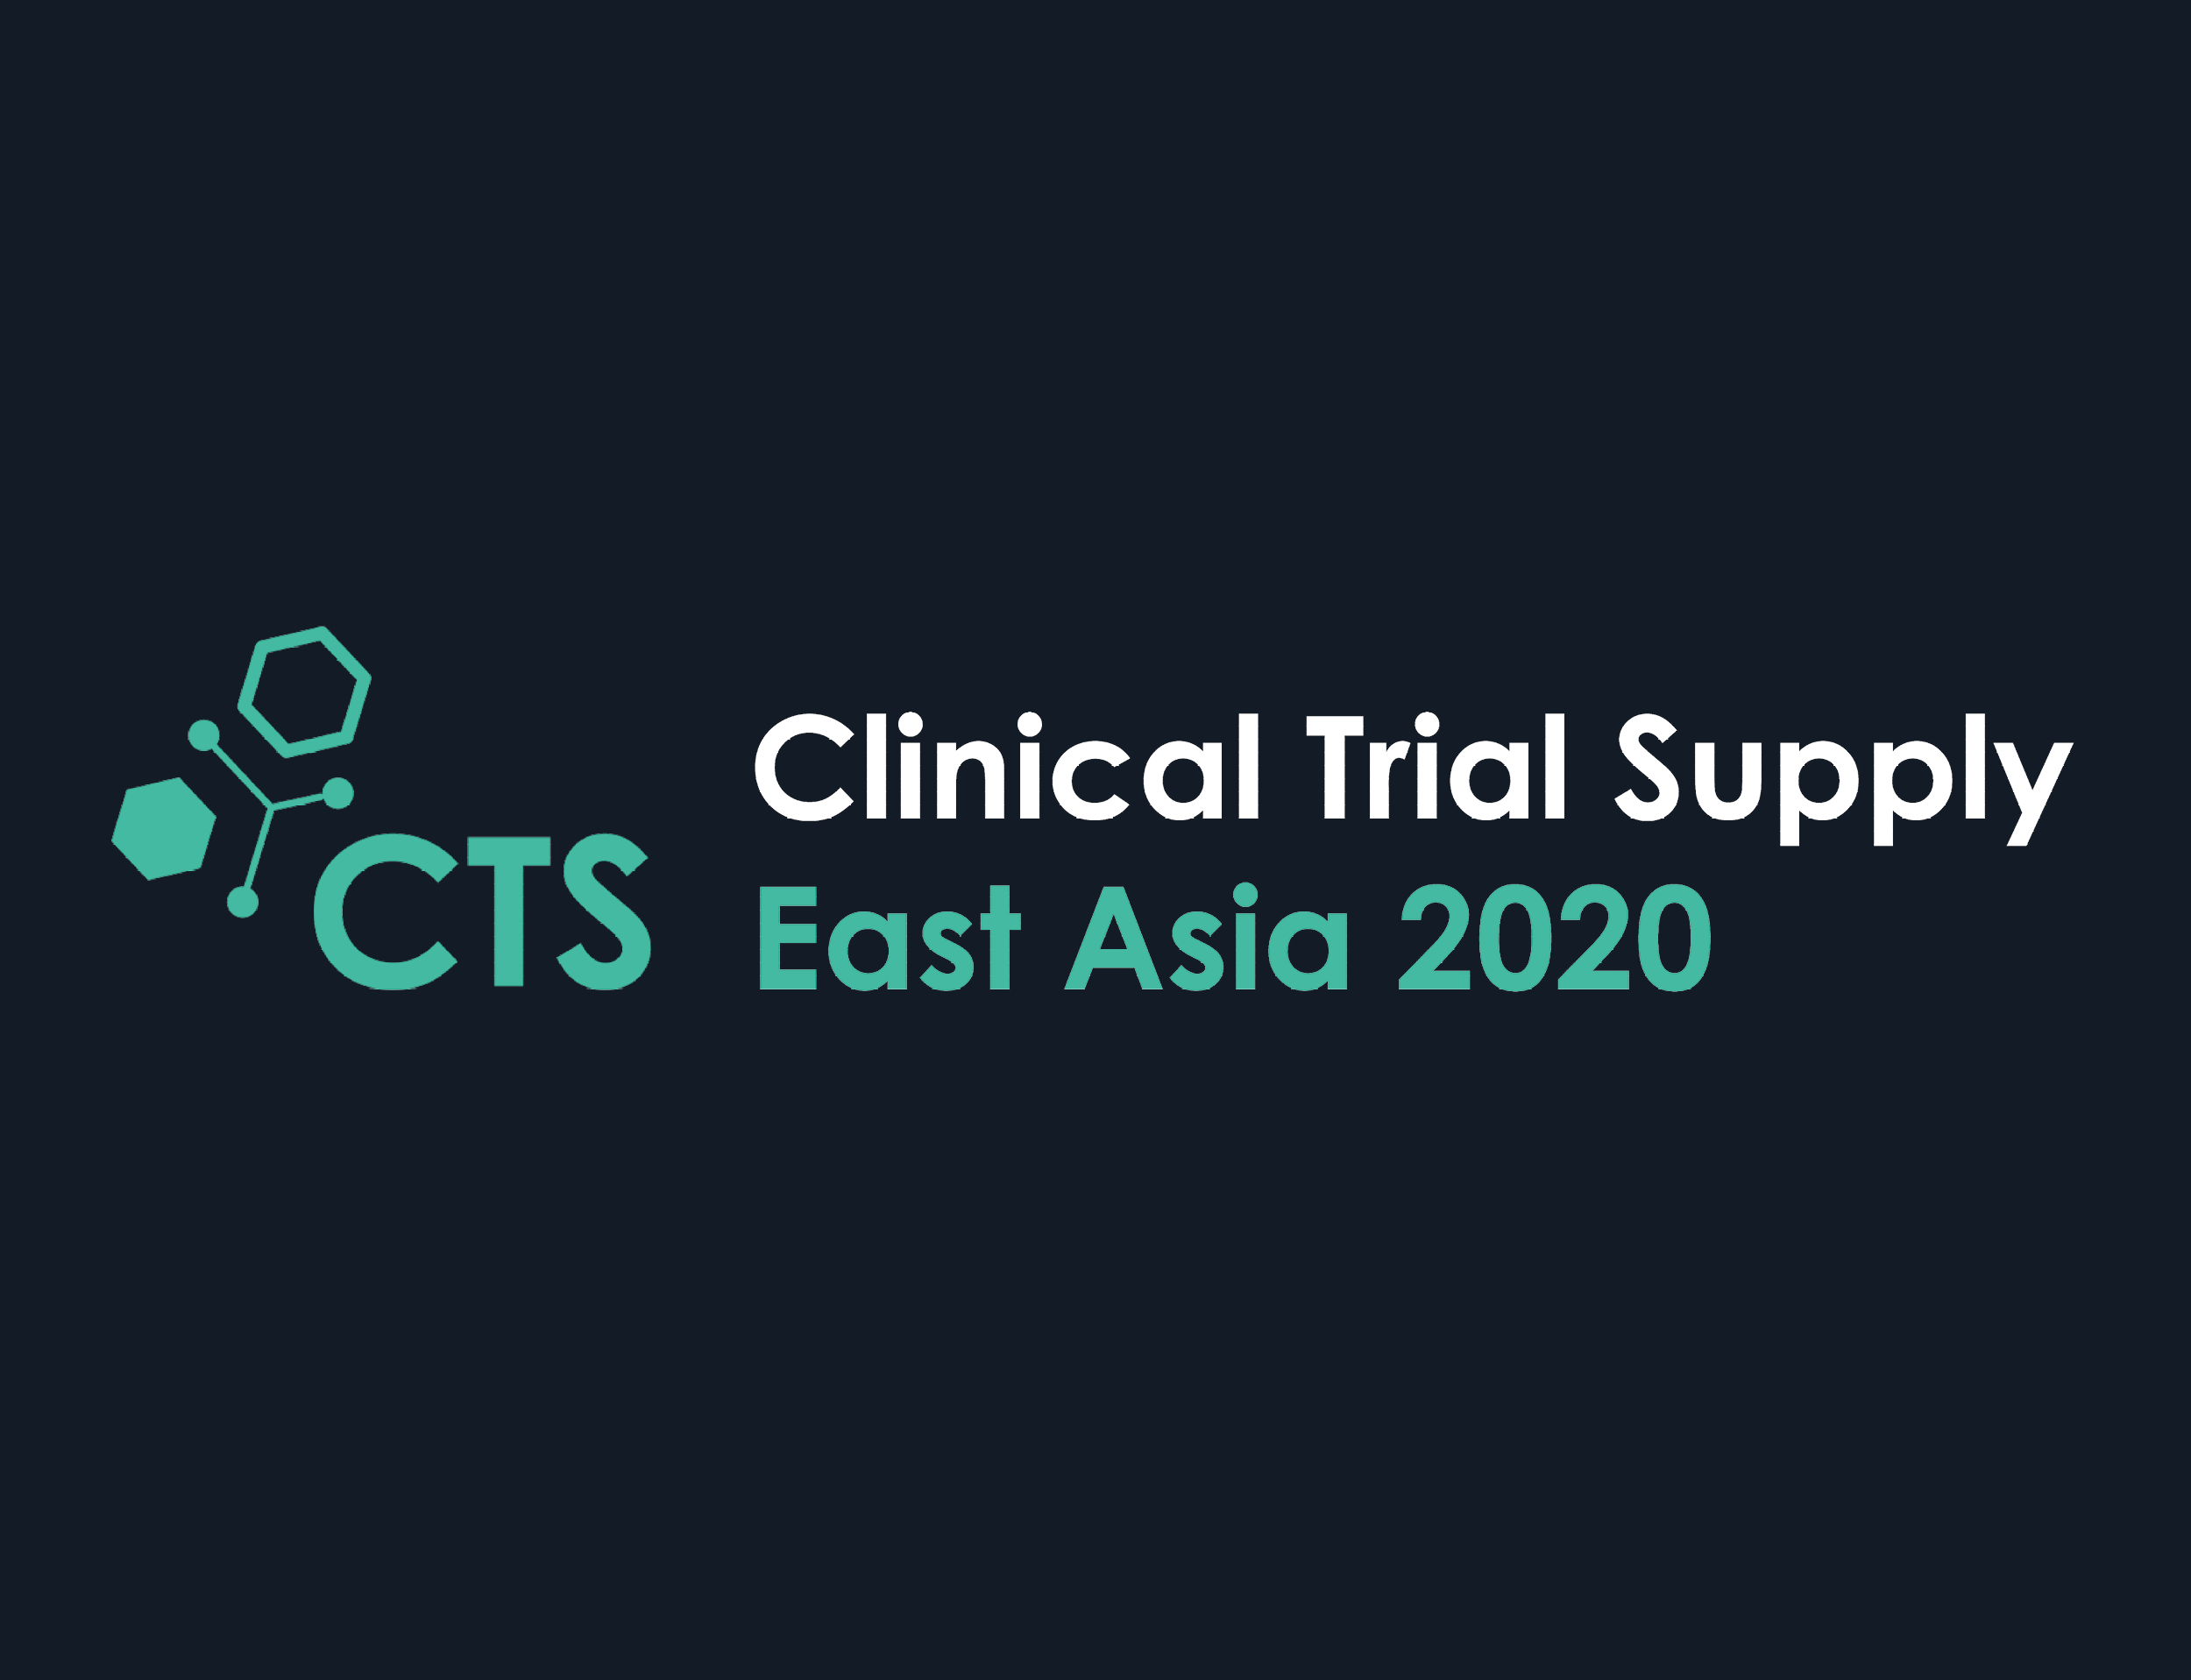 Clinical Trial Supply East Asia 2020